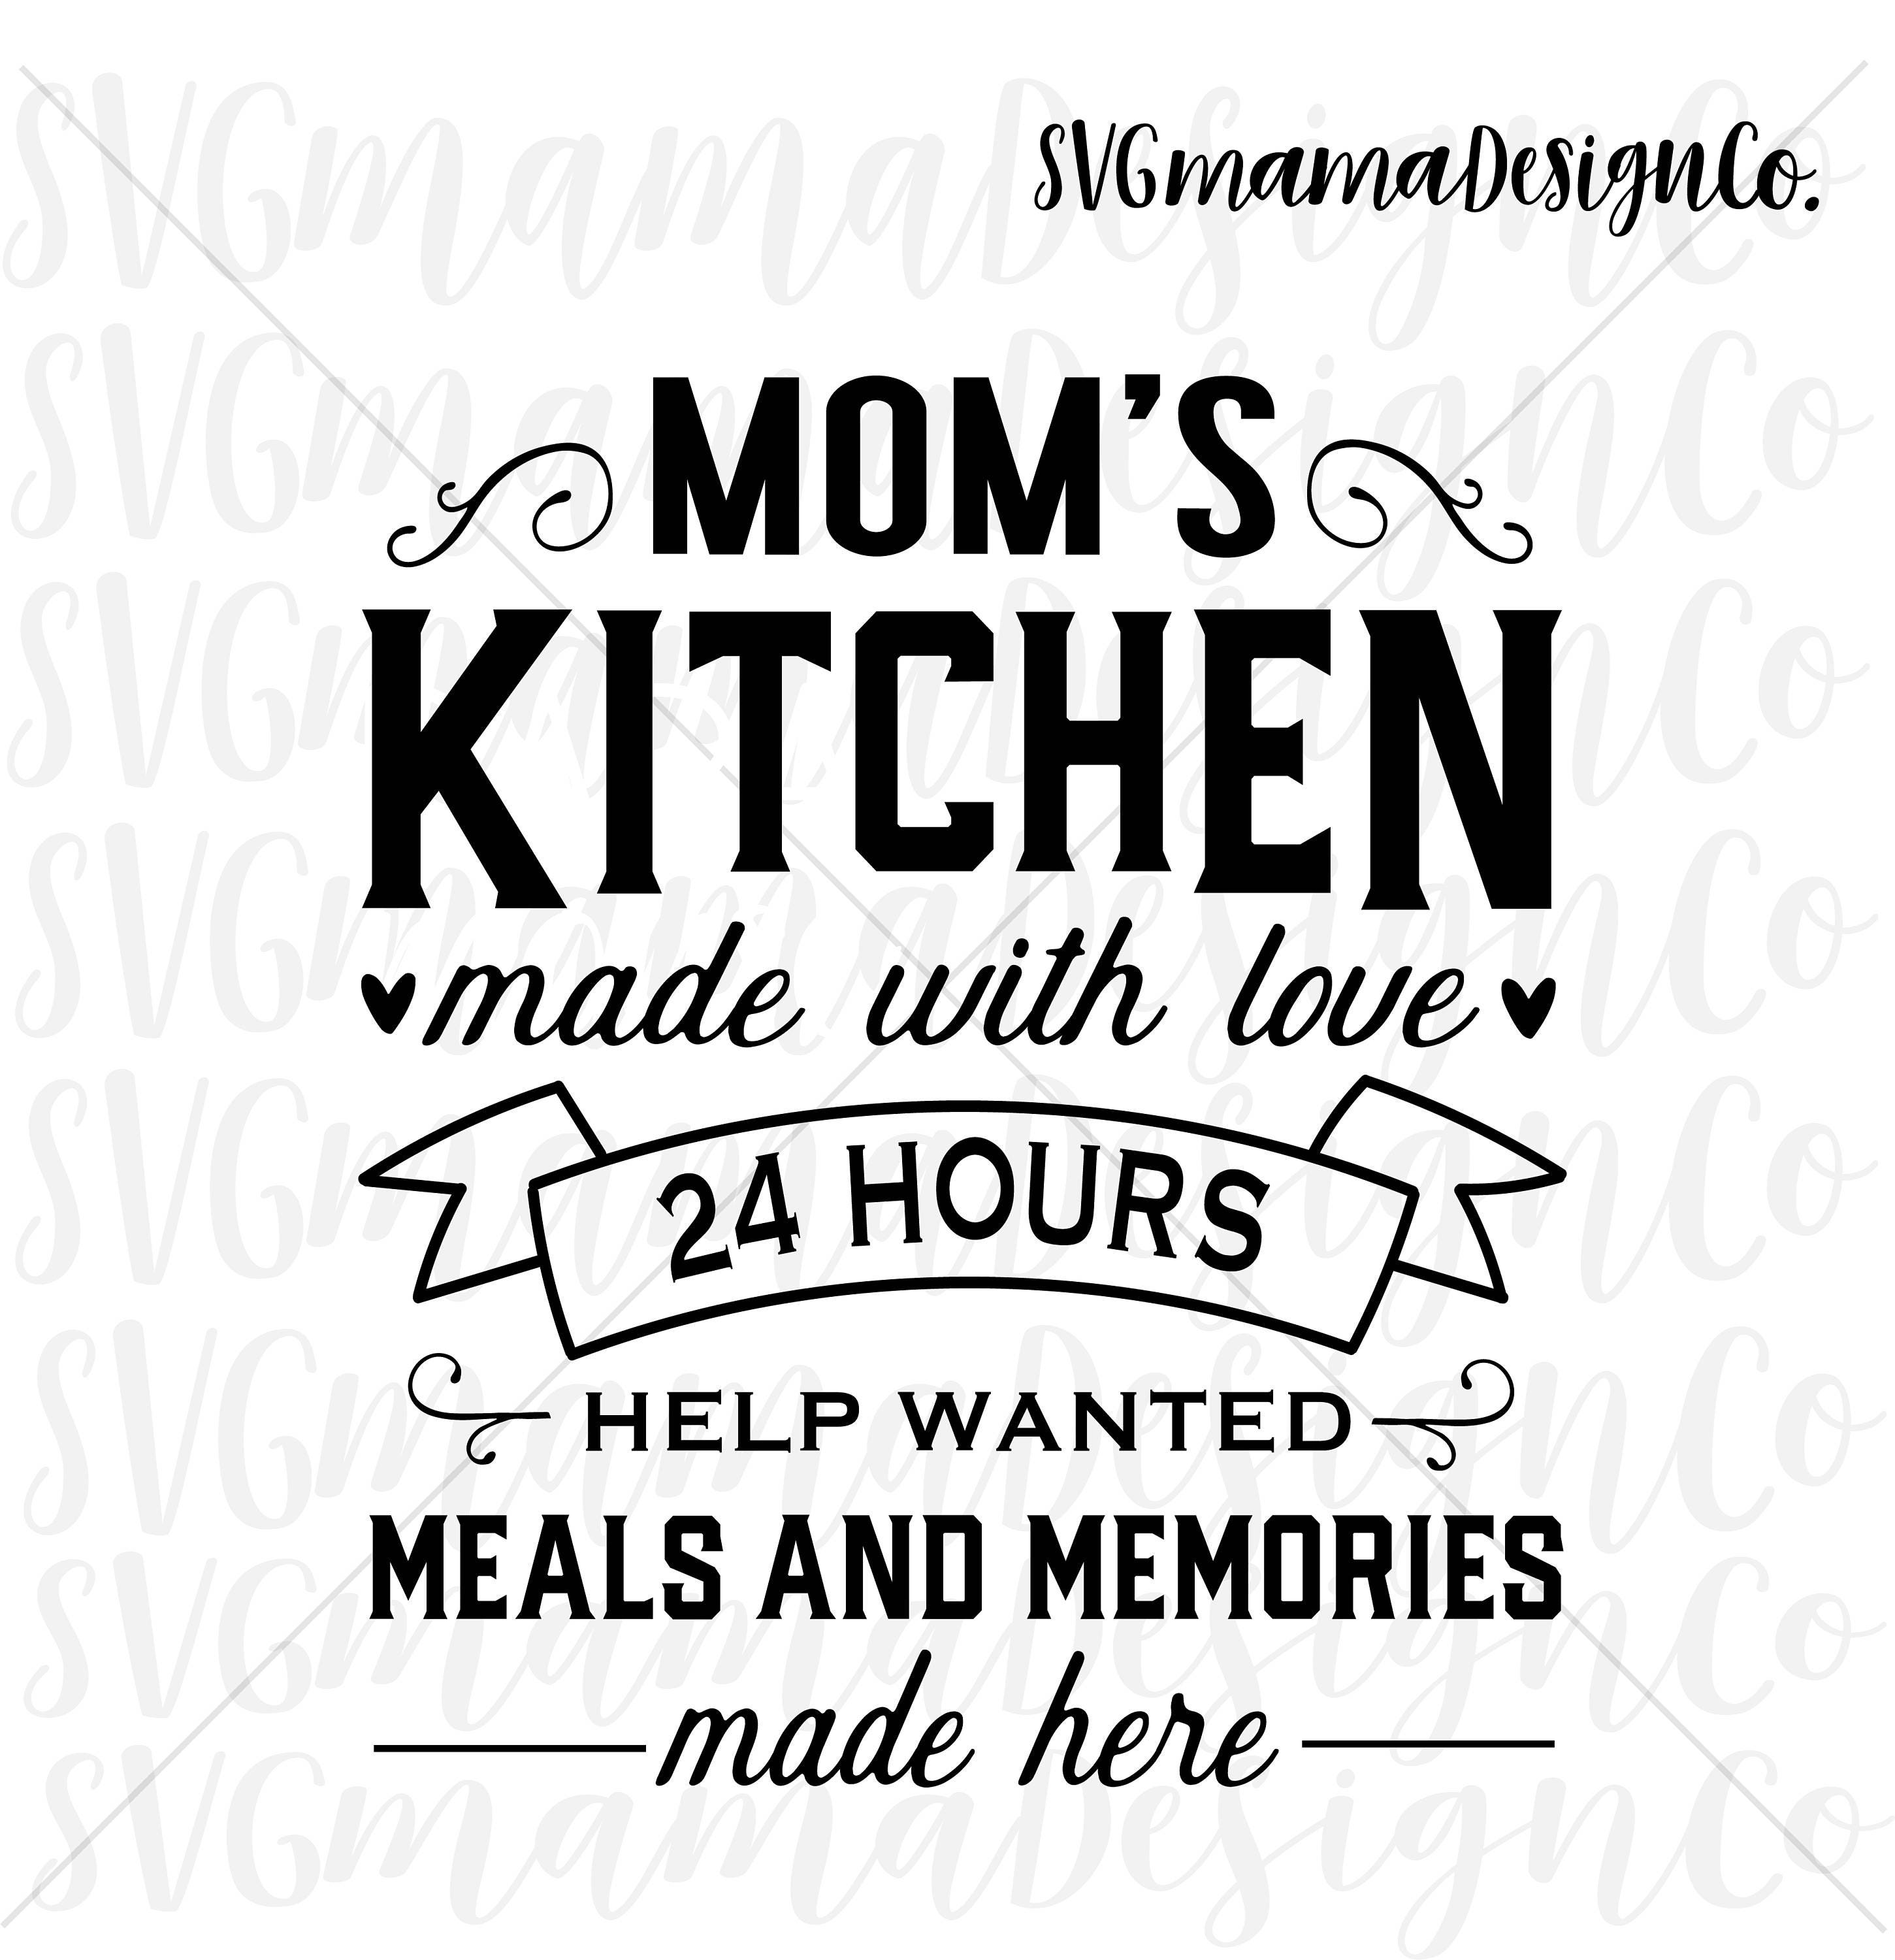 Moms Kitchen Sign SVG Cut File for Cricut and Silhouette